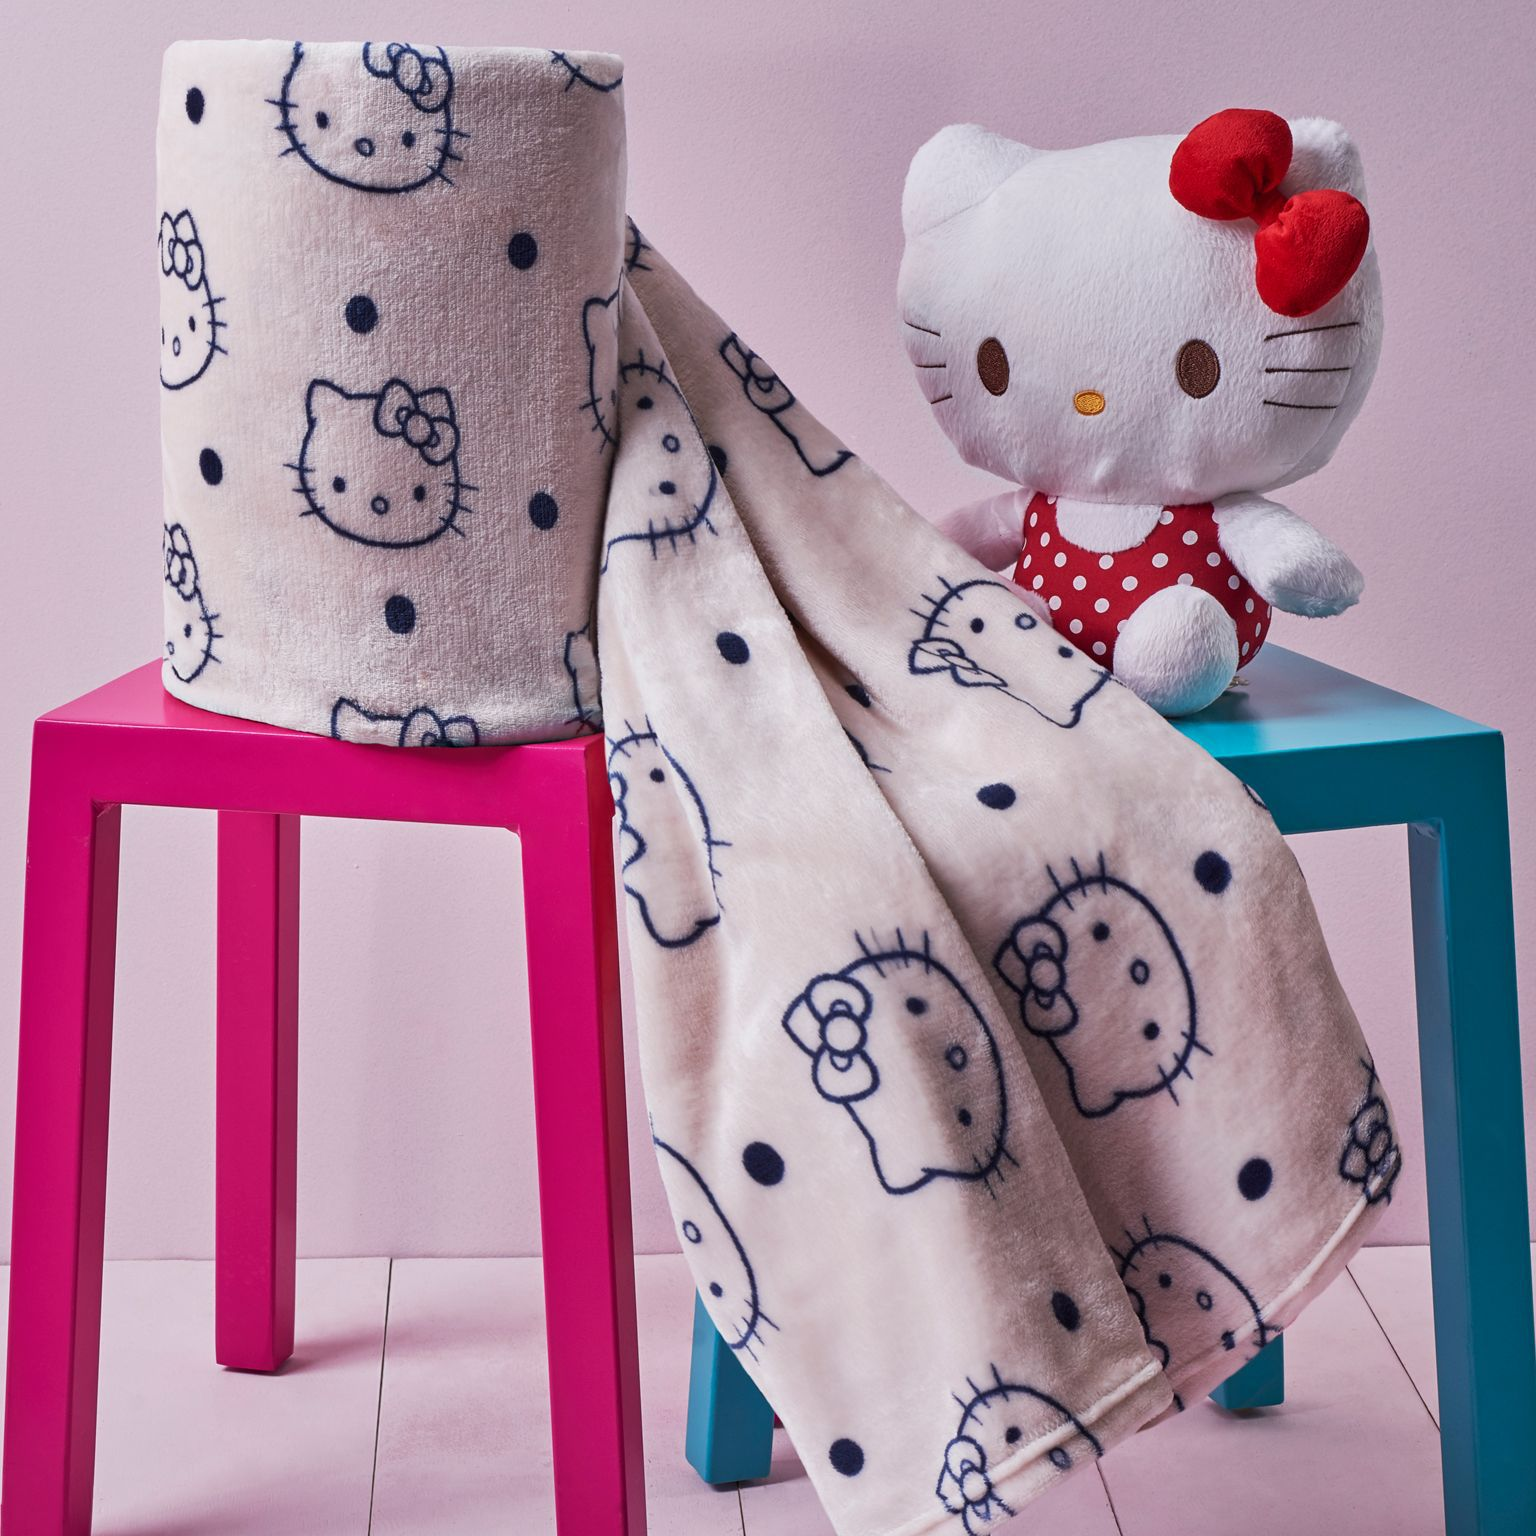 Manta Microfibra Aveludada Hello Kitty Poá